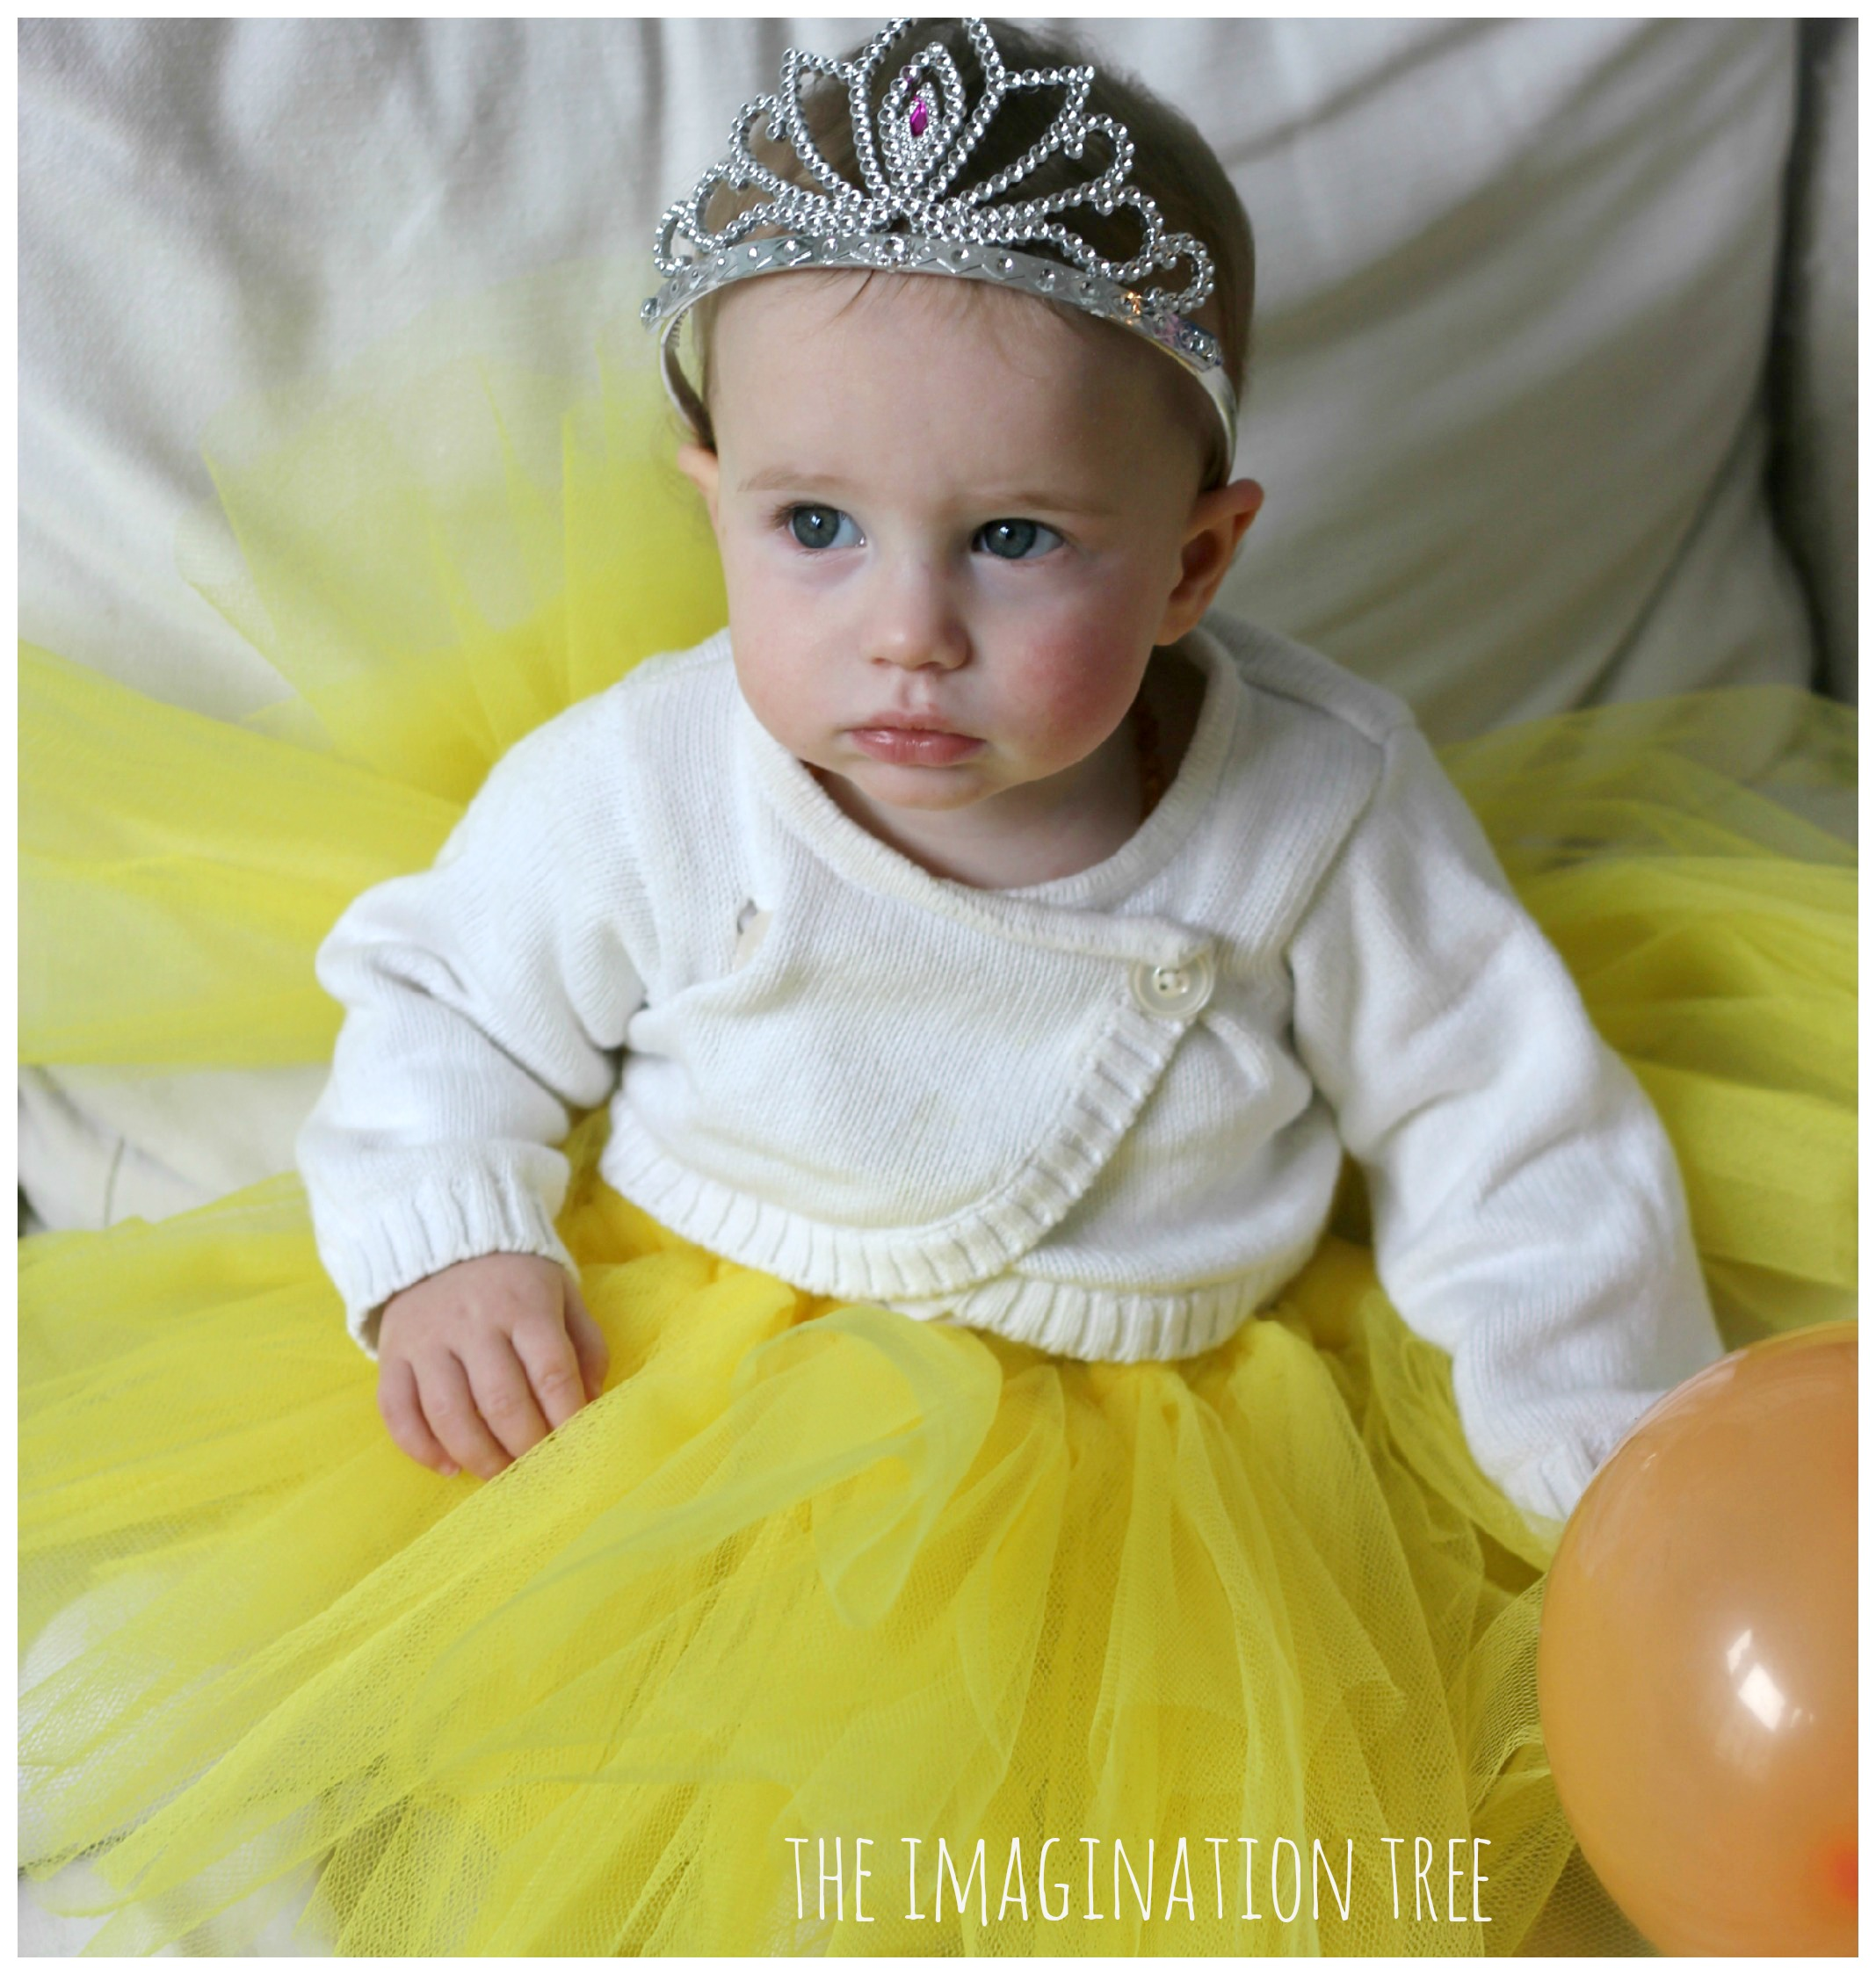 Nursery Rhyme Party for Baby's 1st Birthday - The Imagination Tree